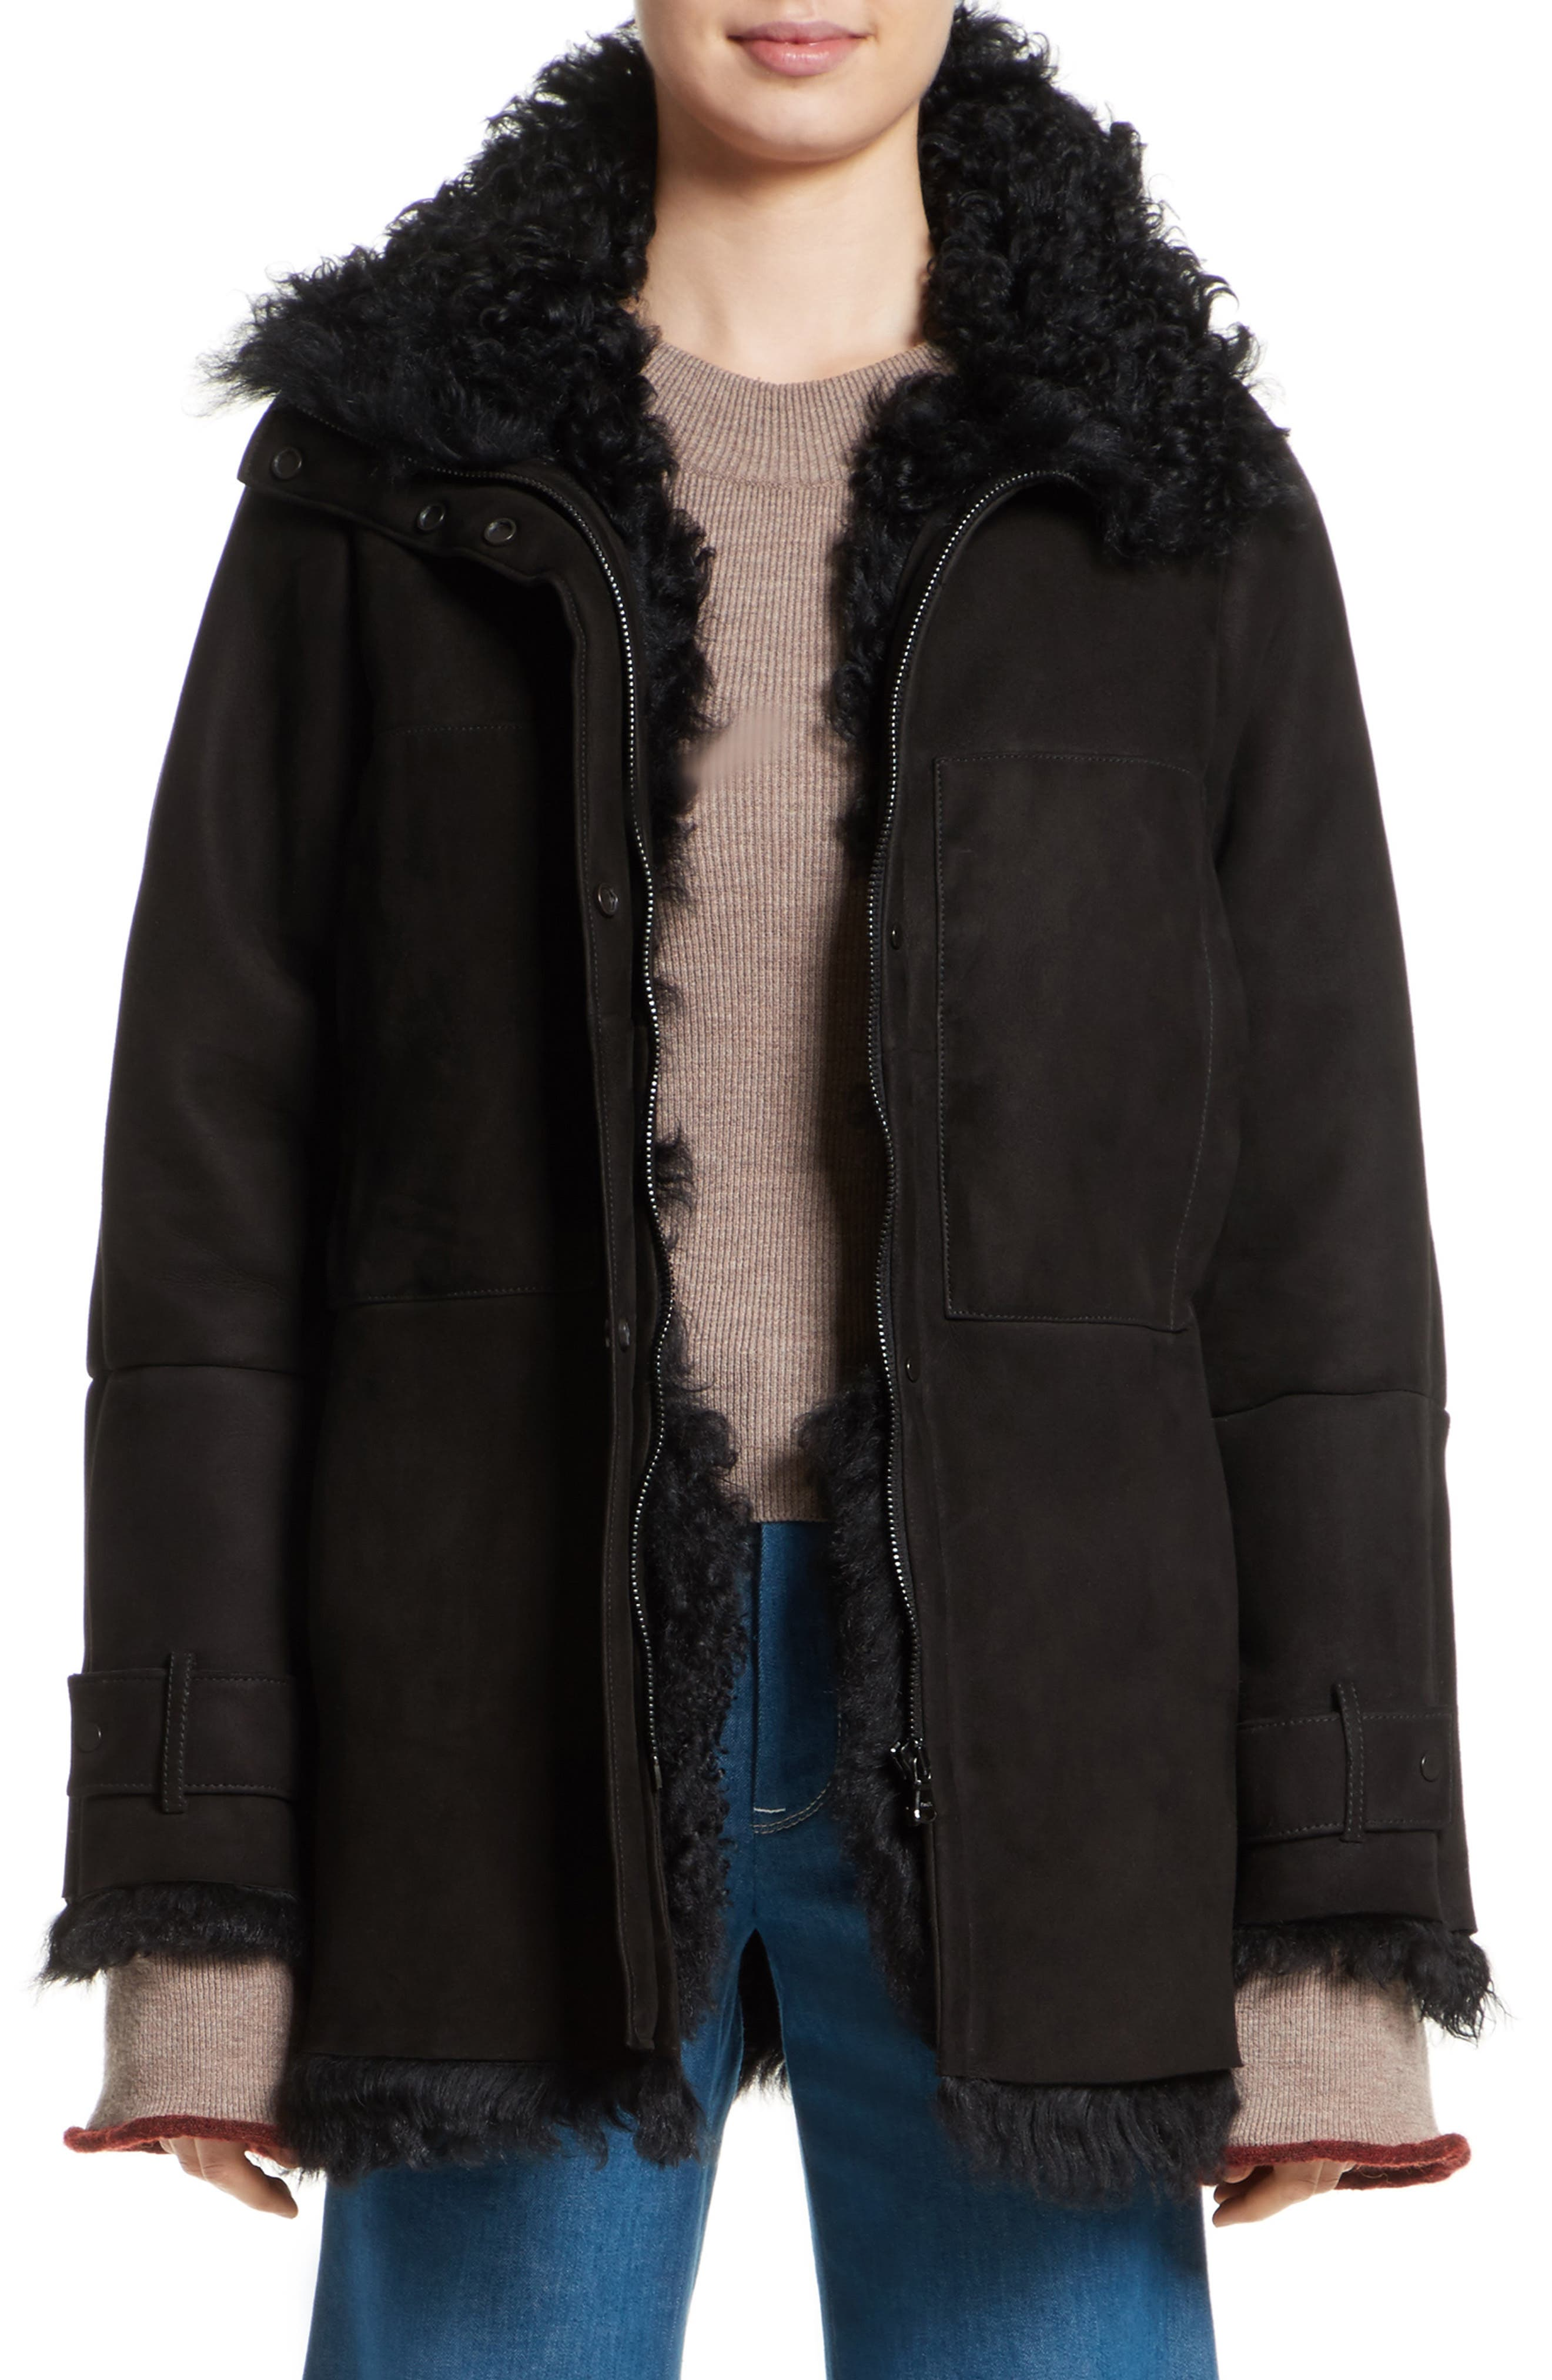 Colovos Reversible Genuine Shearling Coat